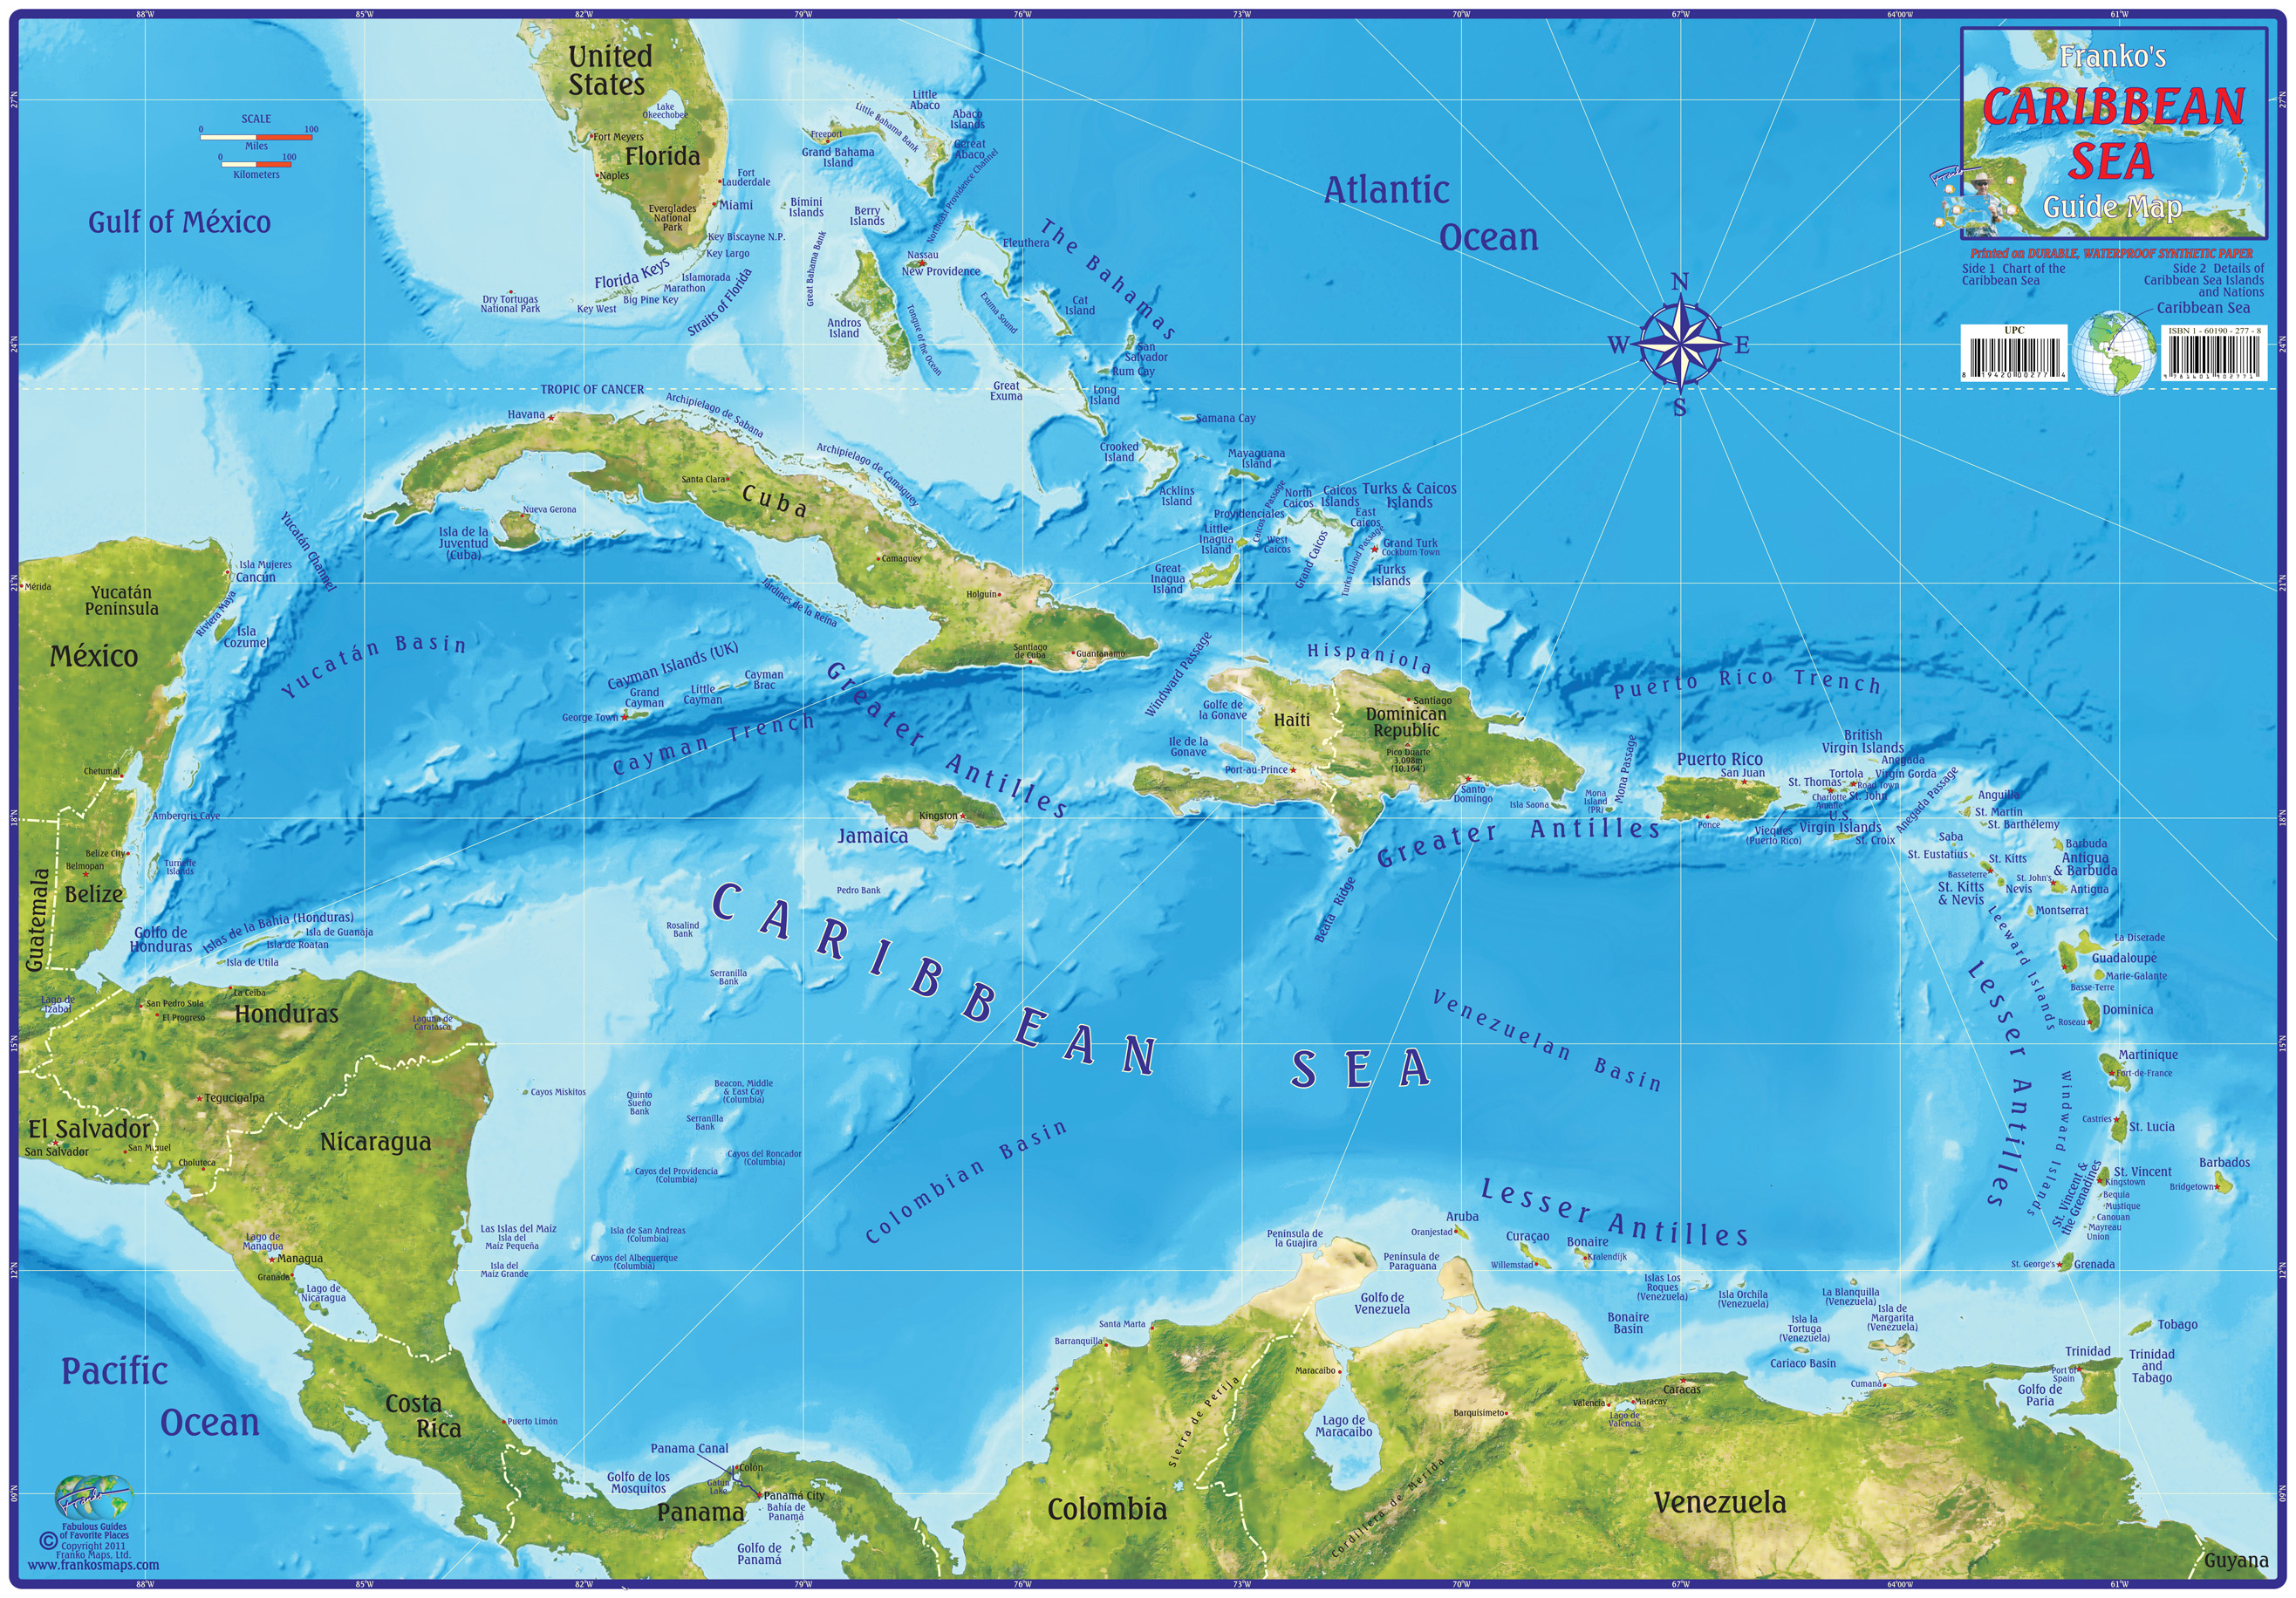 Franko Maps Caribbean Sea Guide Map